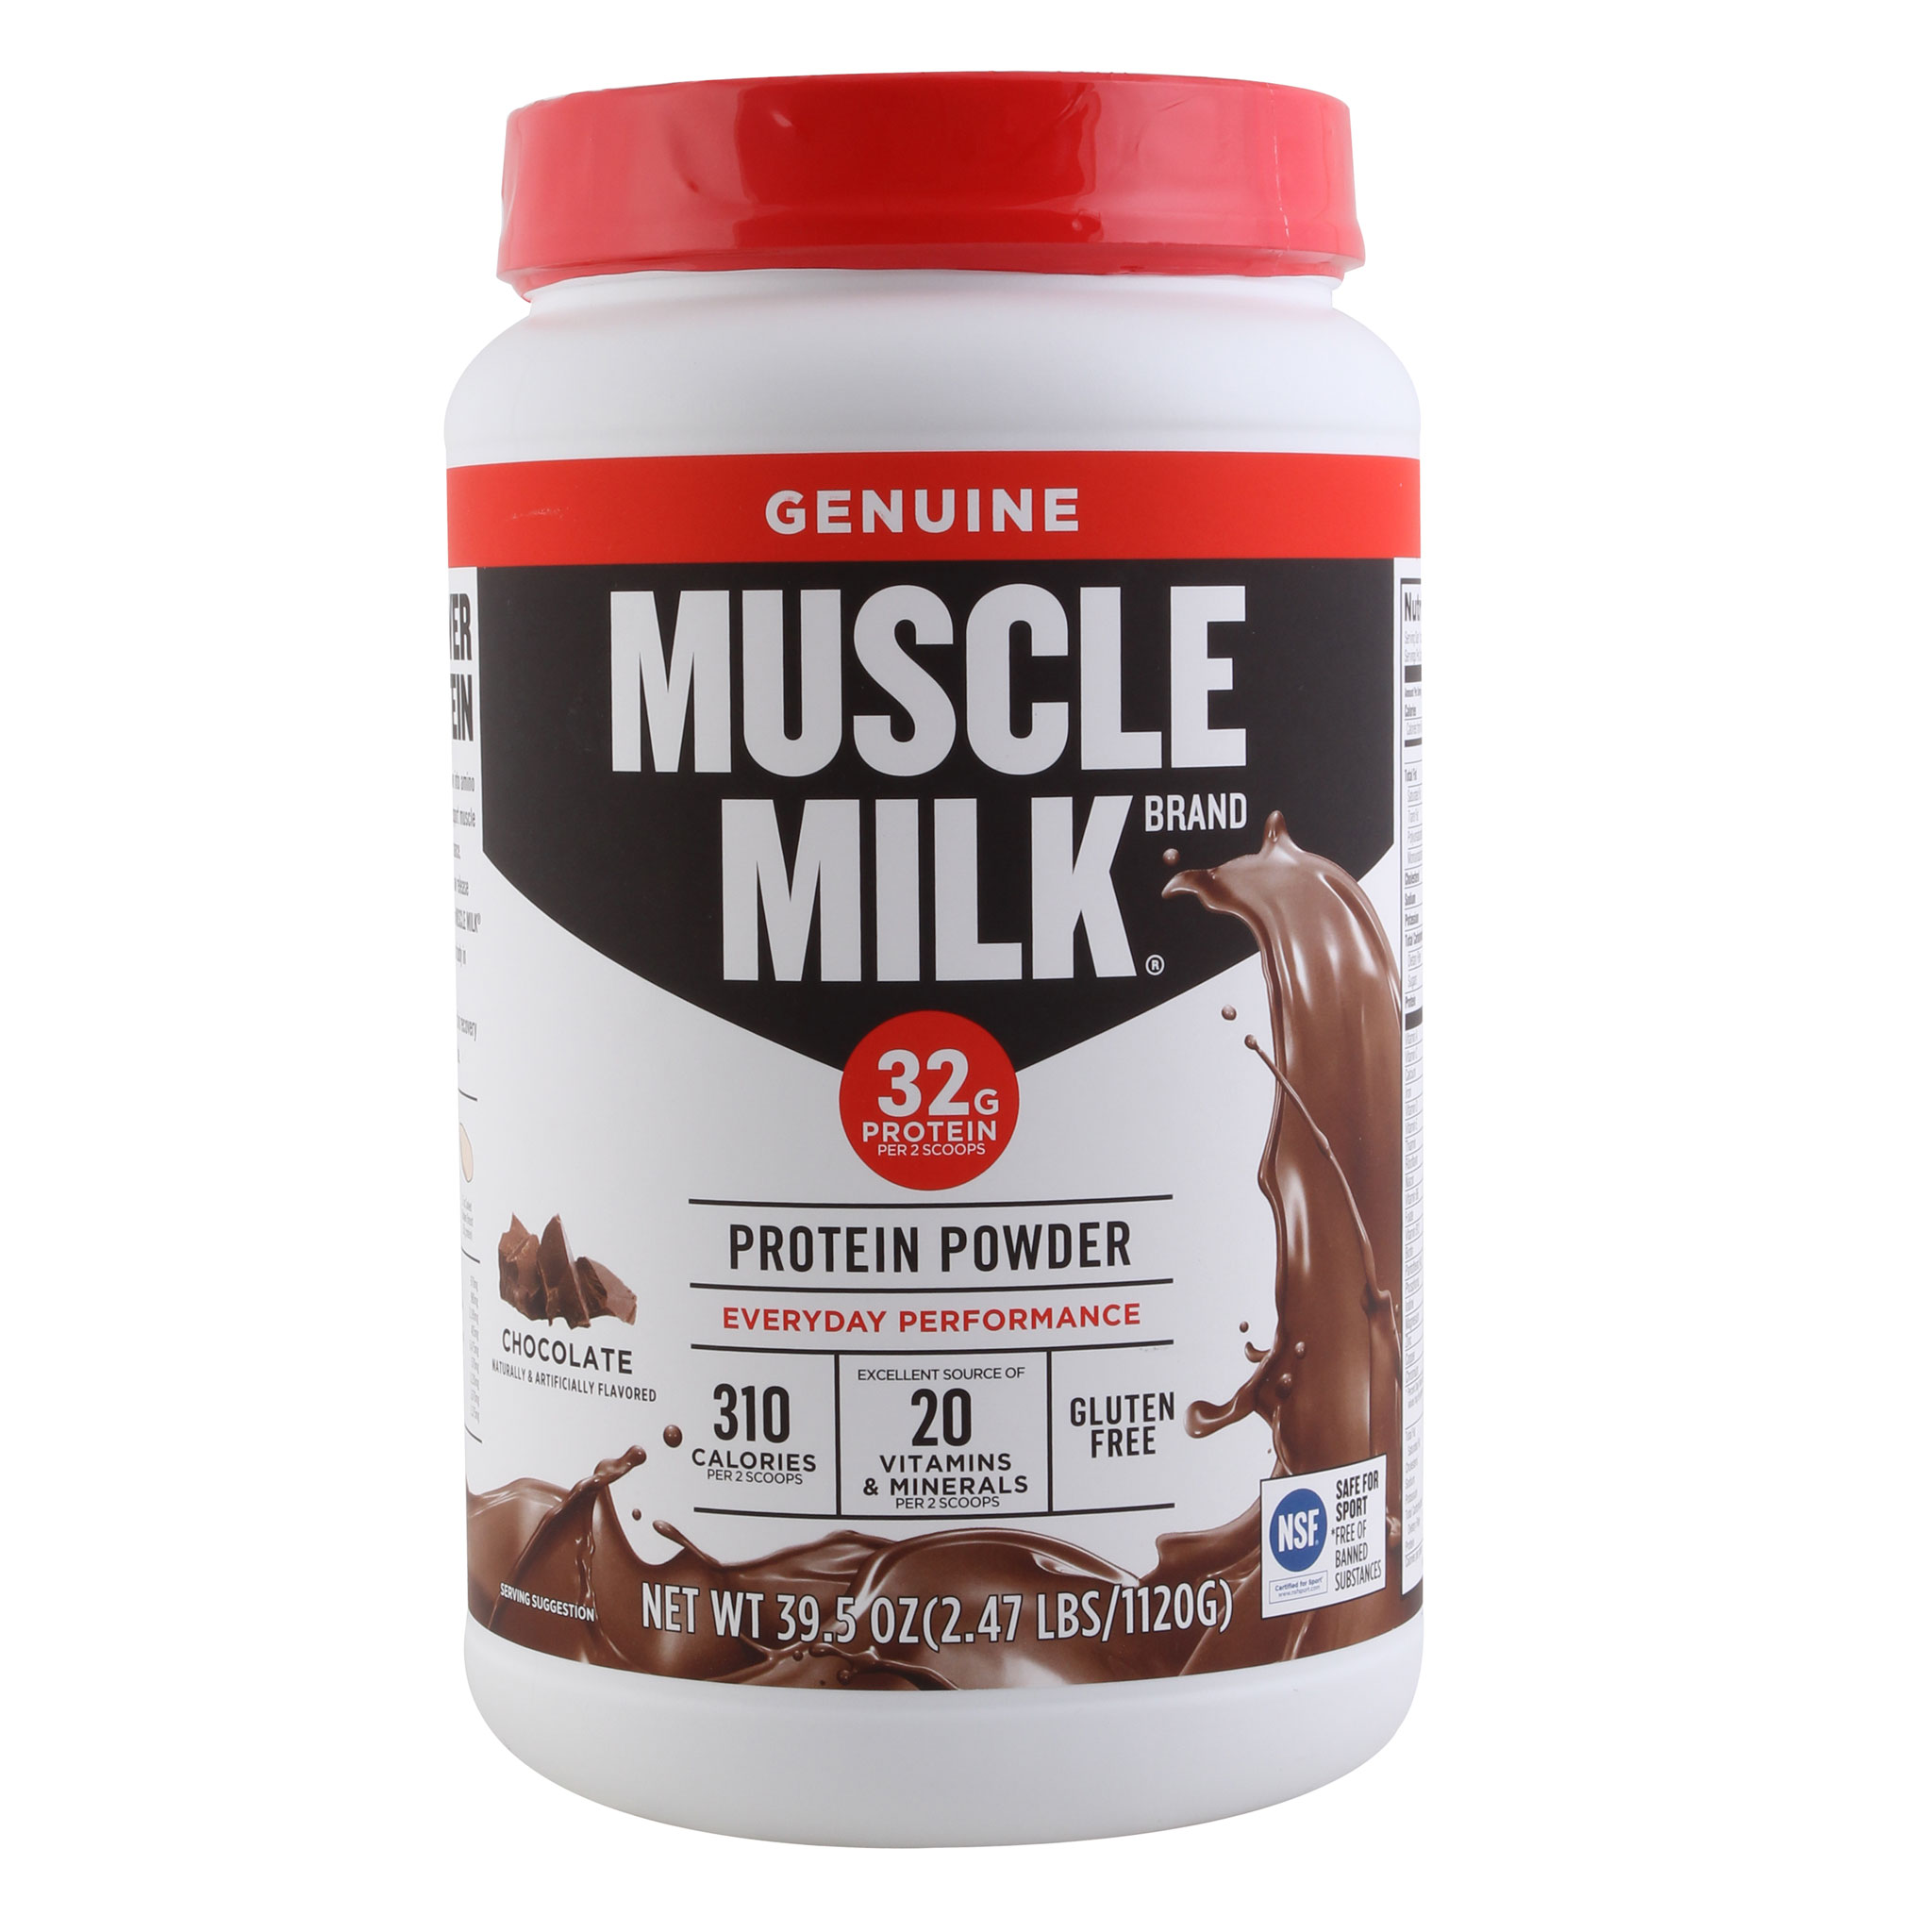 Muscle Milk Drink Mix, Chocolate - 2.47lb Canister